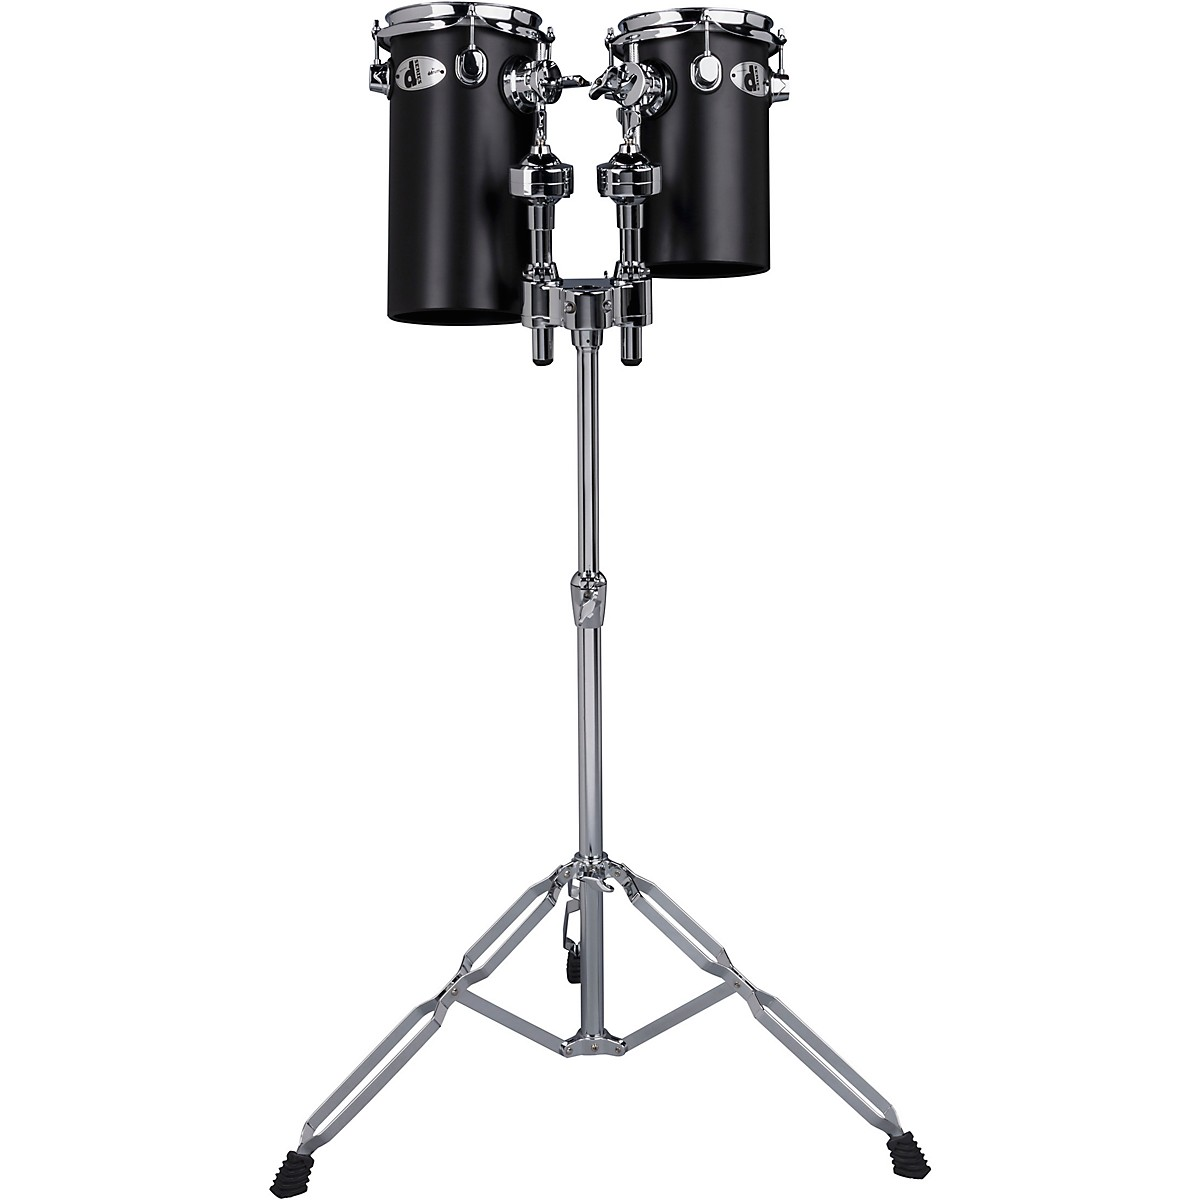 ddrum Deccabons, Black 10 and 12 in.